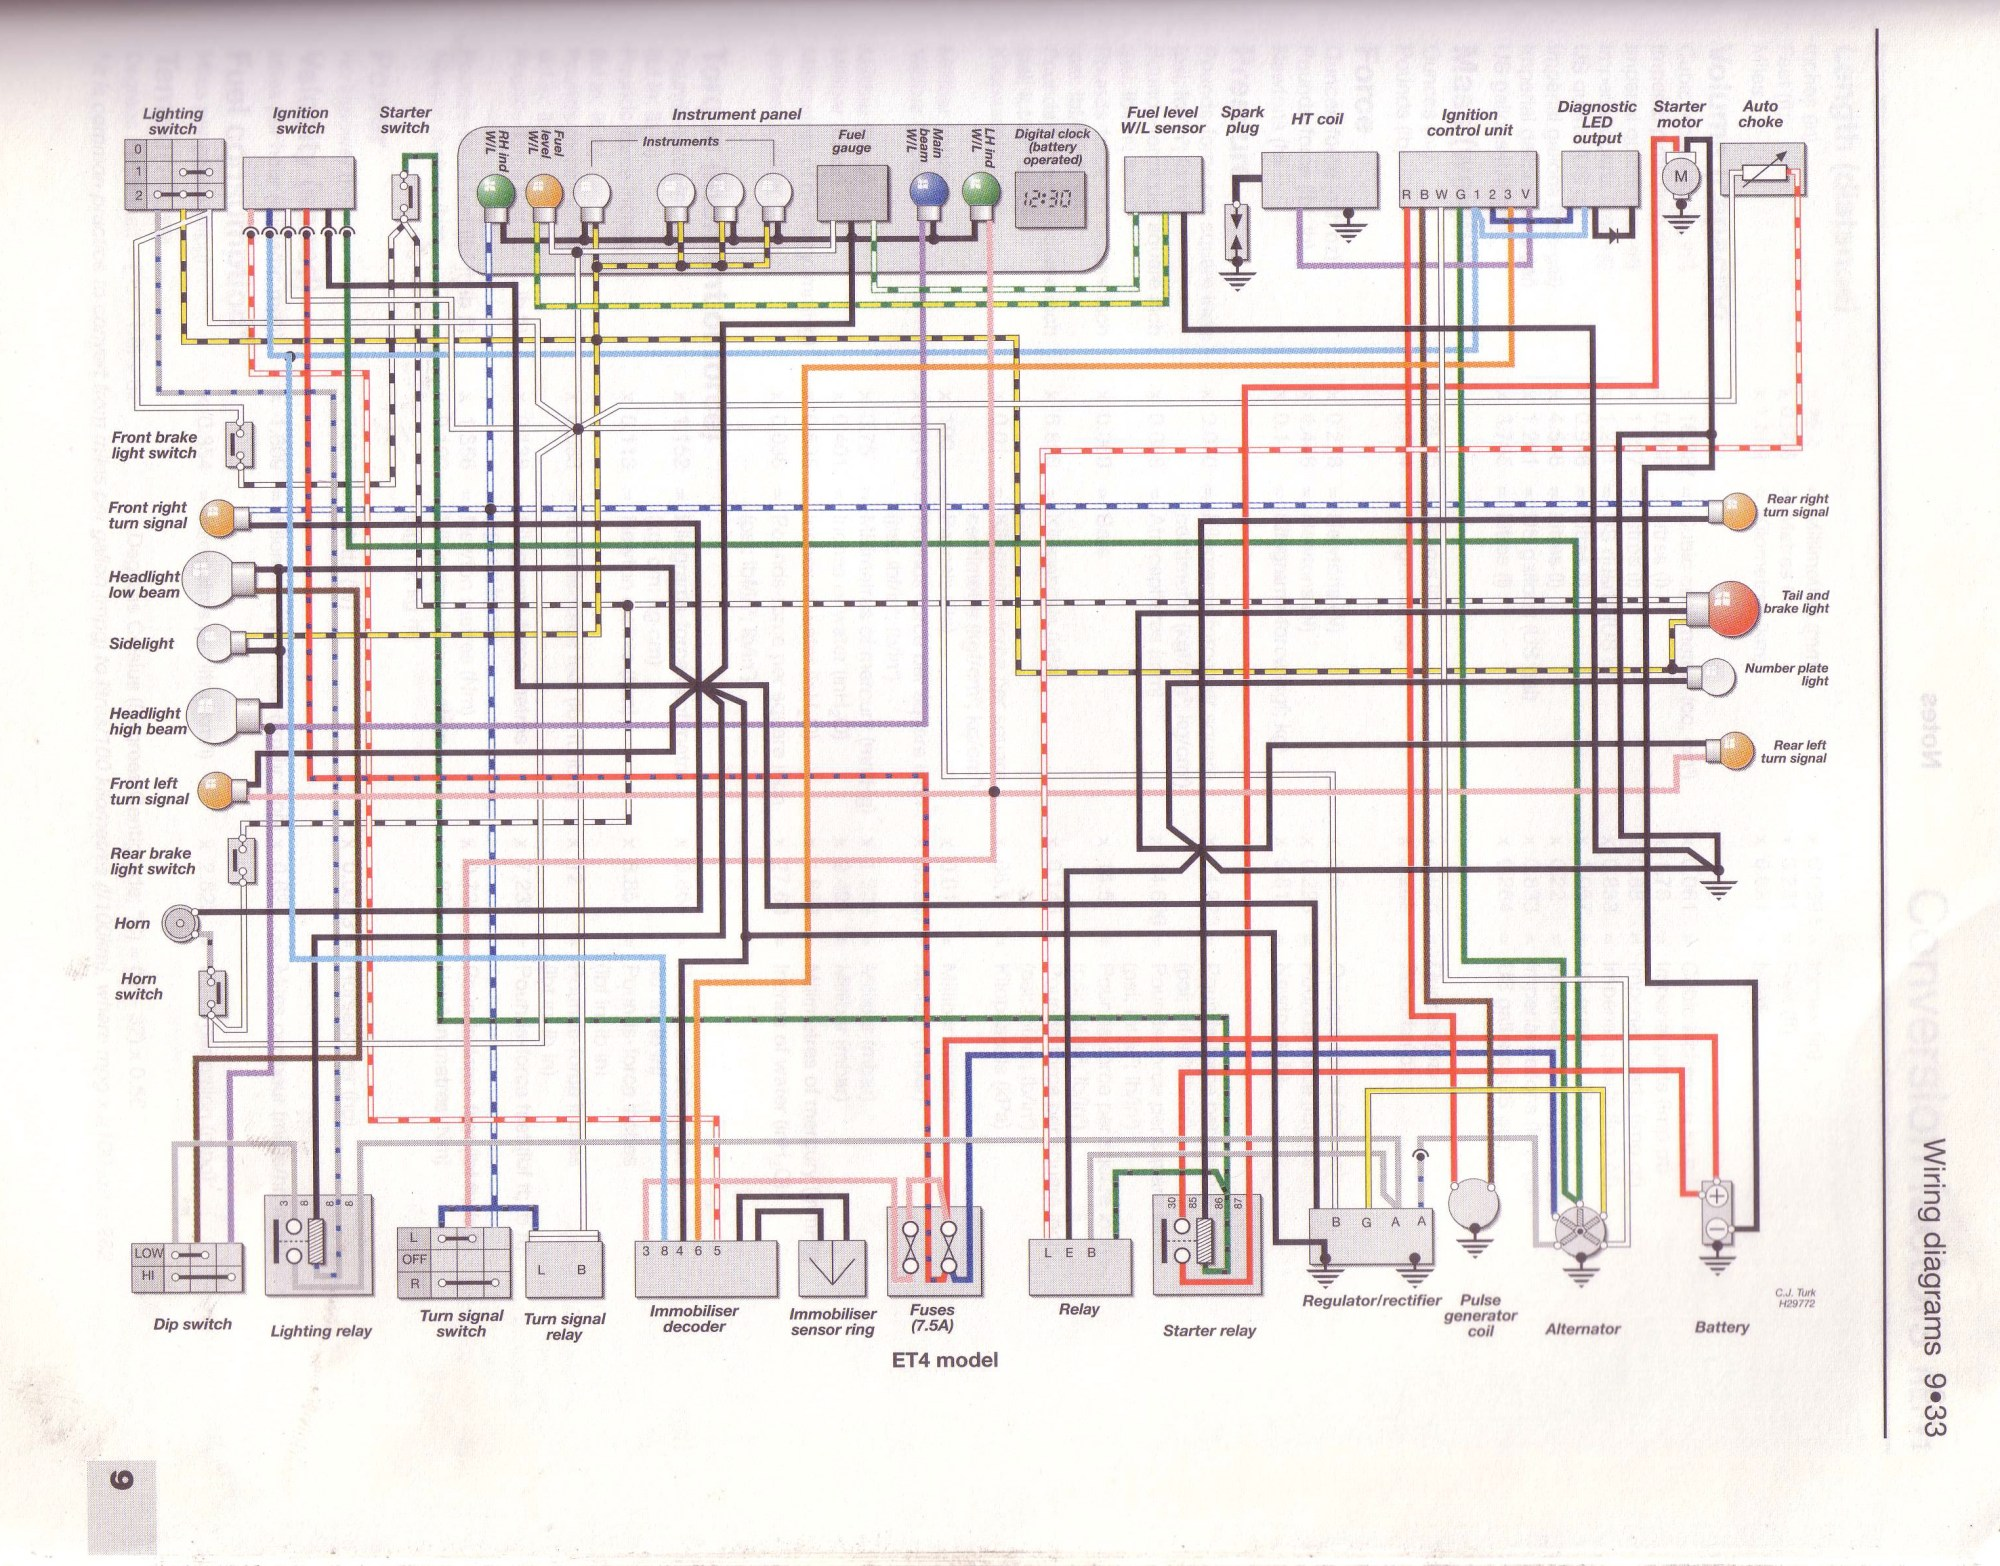 hight resolution of vespa gt200 ignition system electrical diagram wiring diagram today illustrates the vespa gt200 ignition system electrical diagram